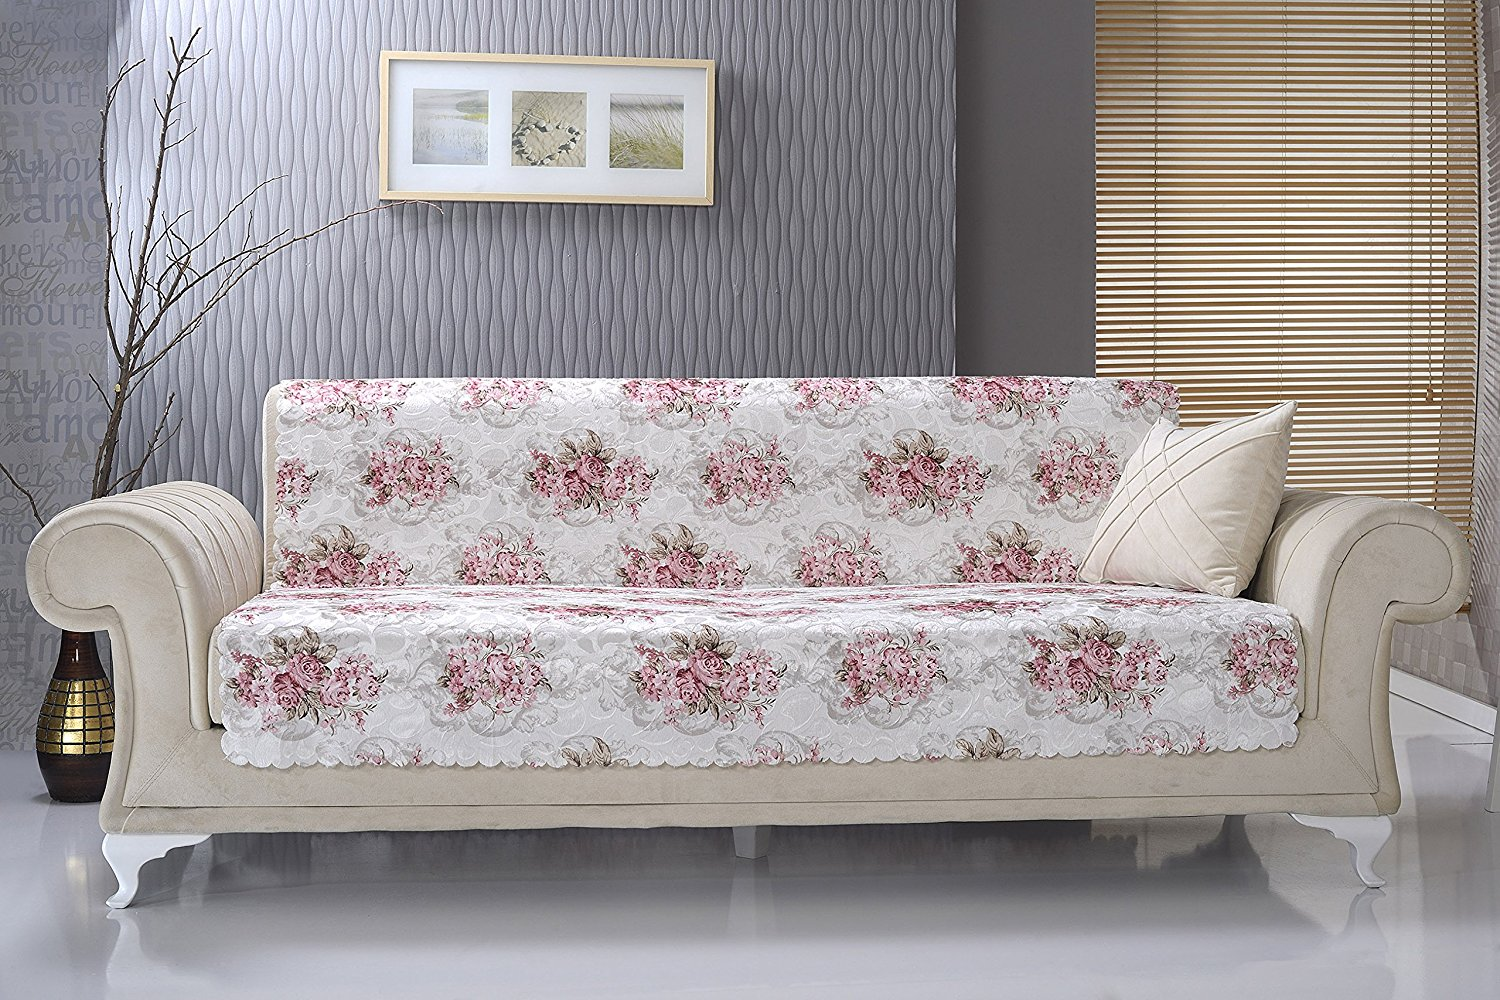 get quotations    authentic turkish sofa futon couch cover  ottoman rose  cheap futon sofa couch find futon sofa couch deals on line at      rh   guide alibaba